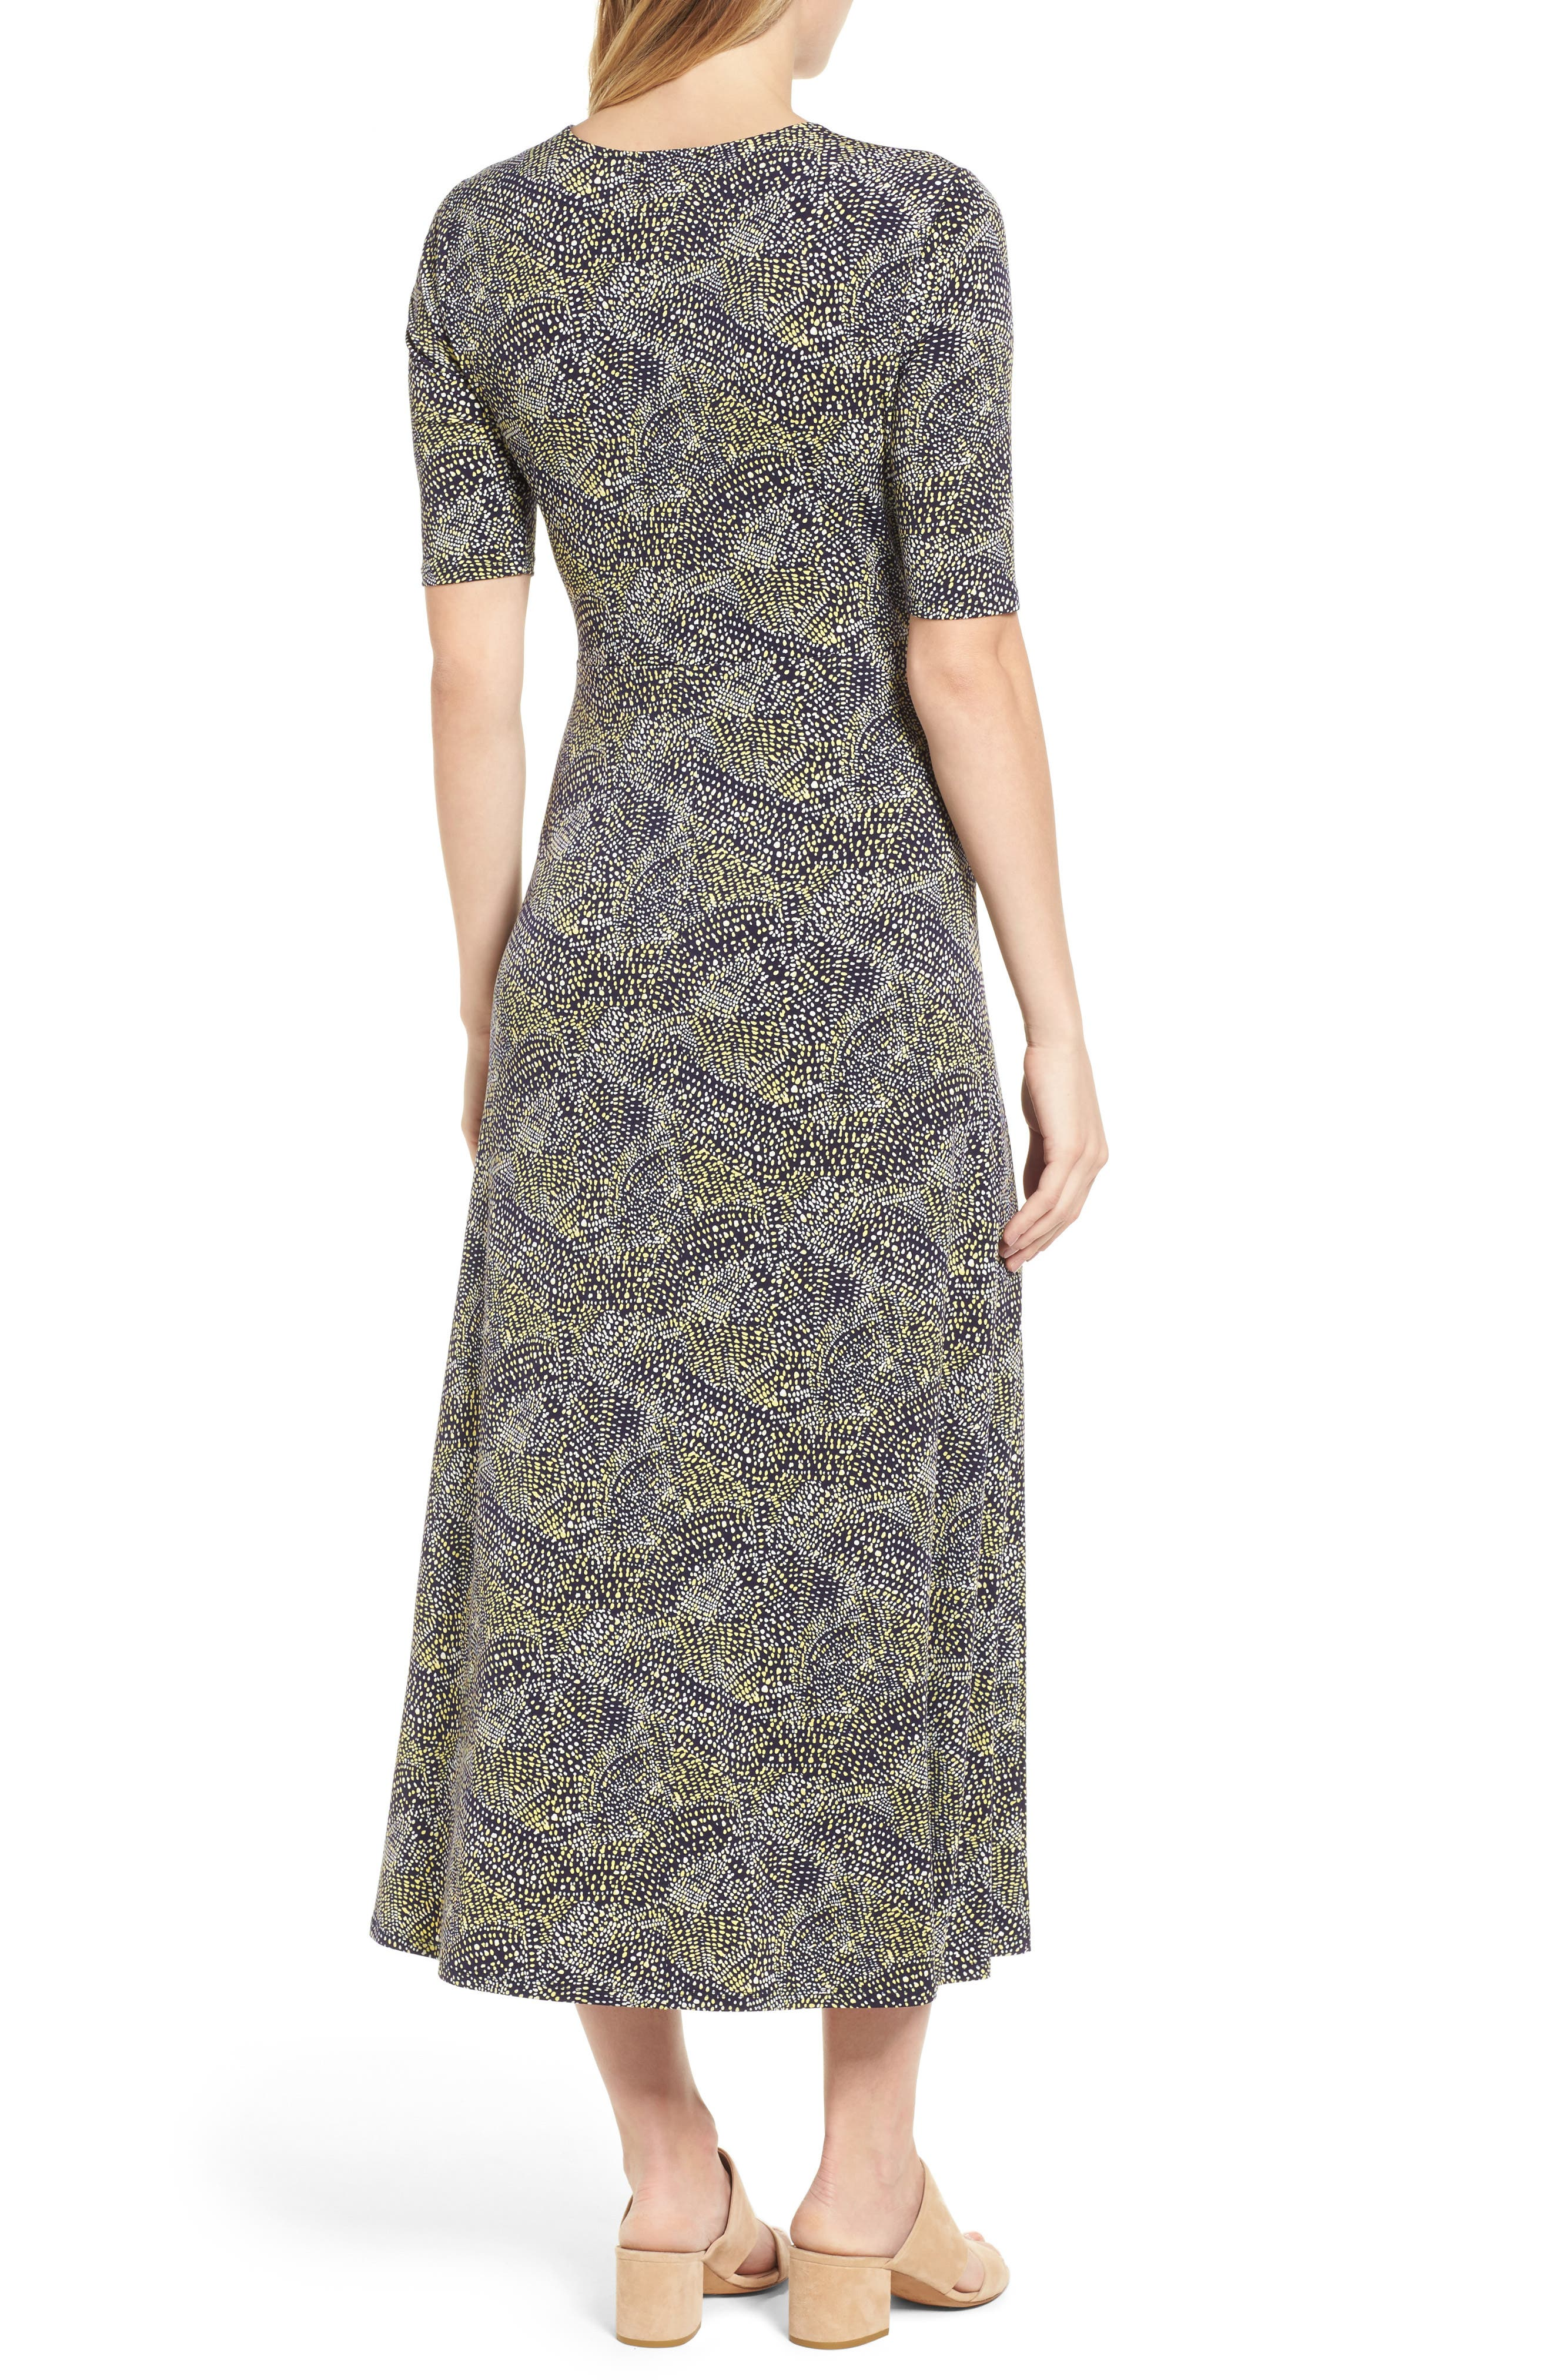 Ruched Speckle Midi Dress,                             Alternate thumbnail 2, color,                             784-Vivid Canary